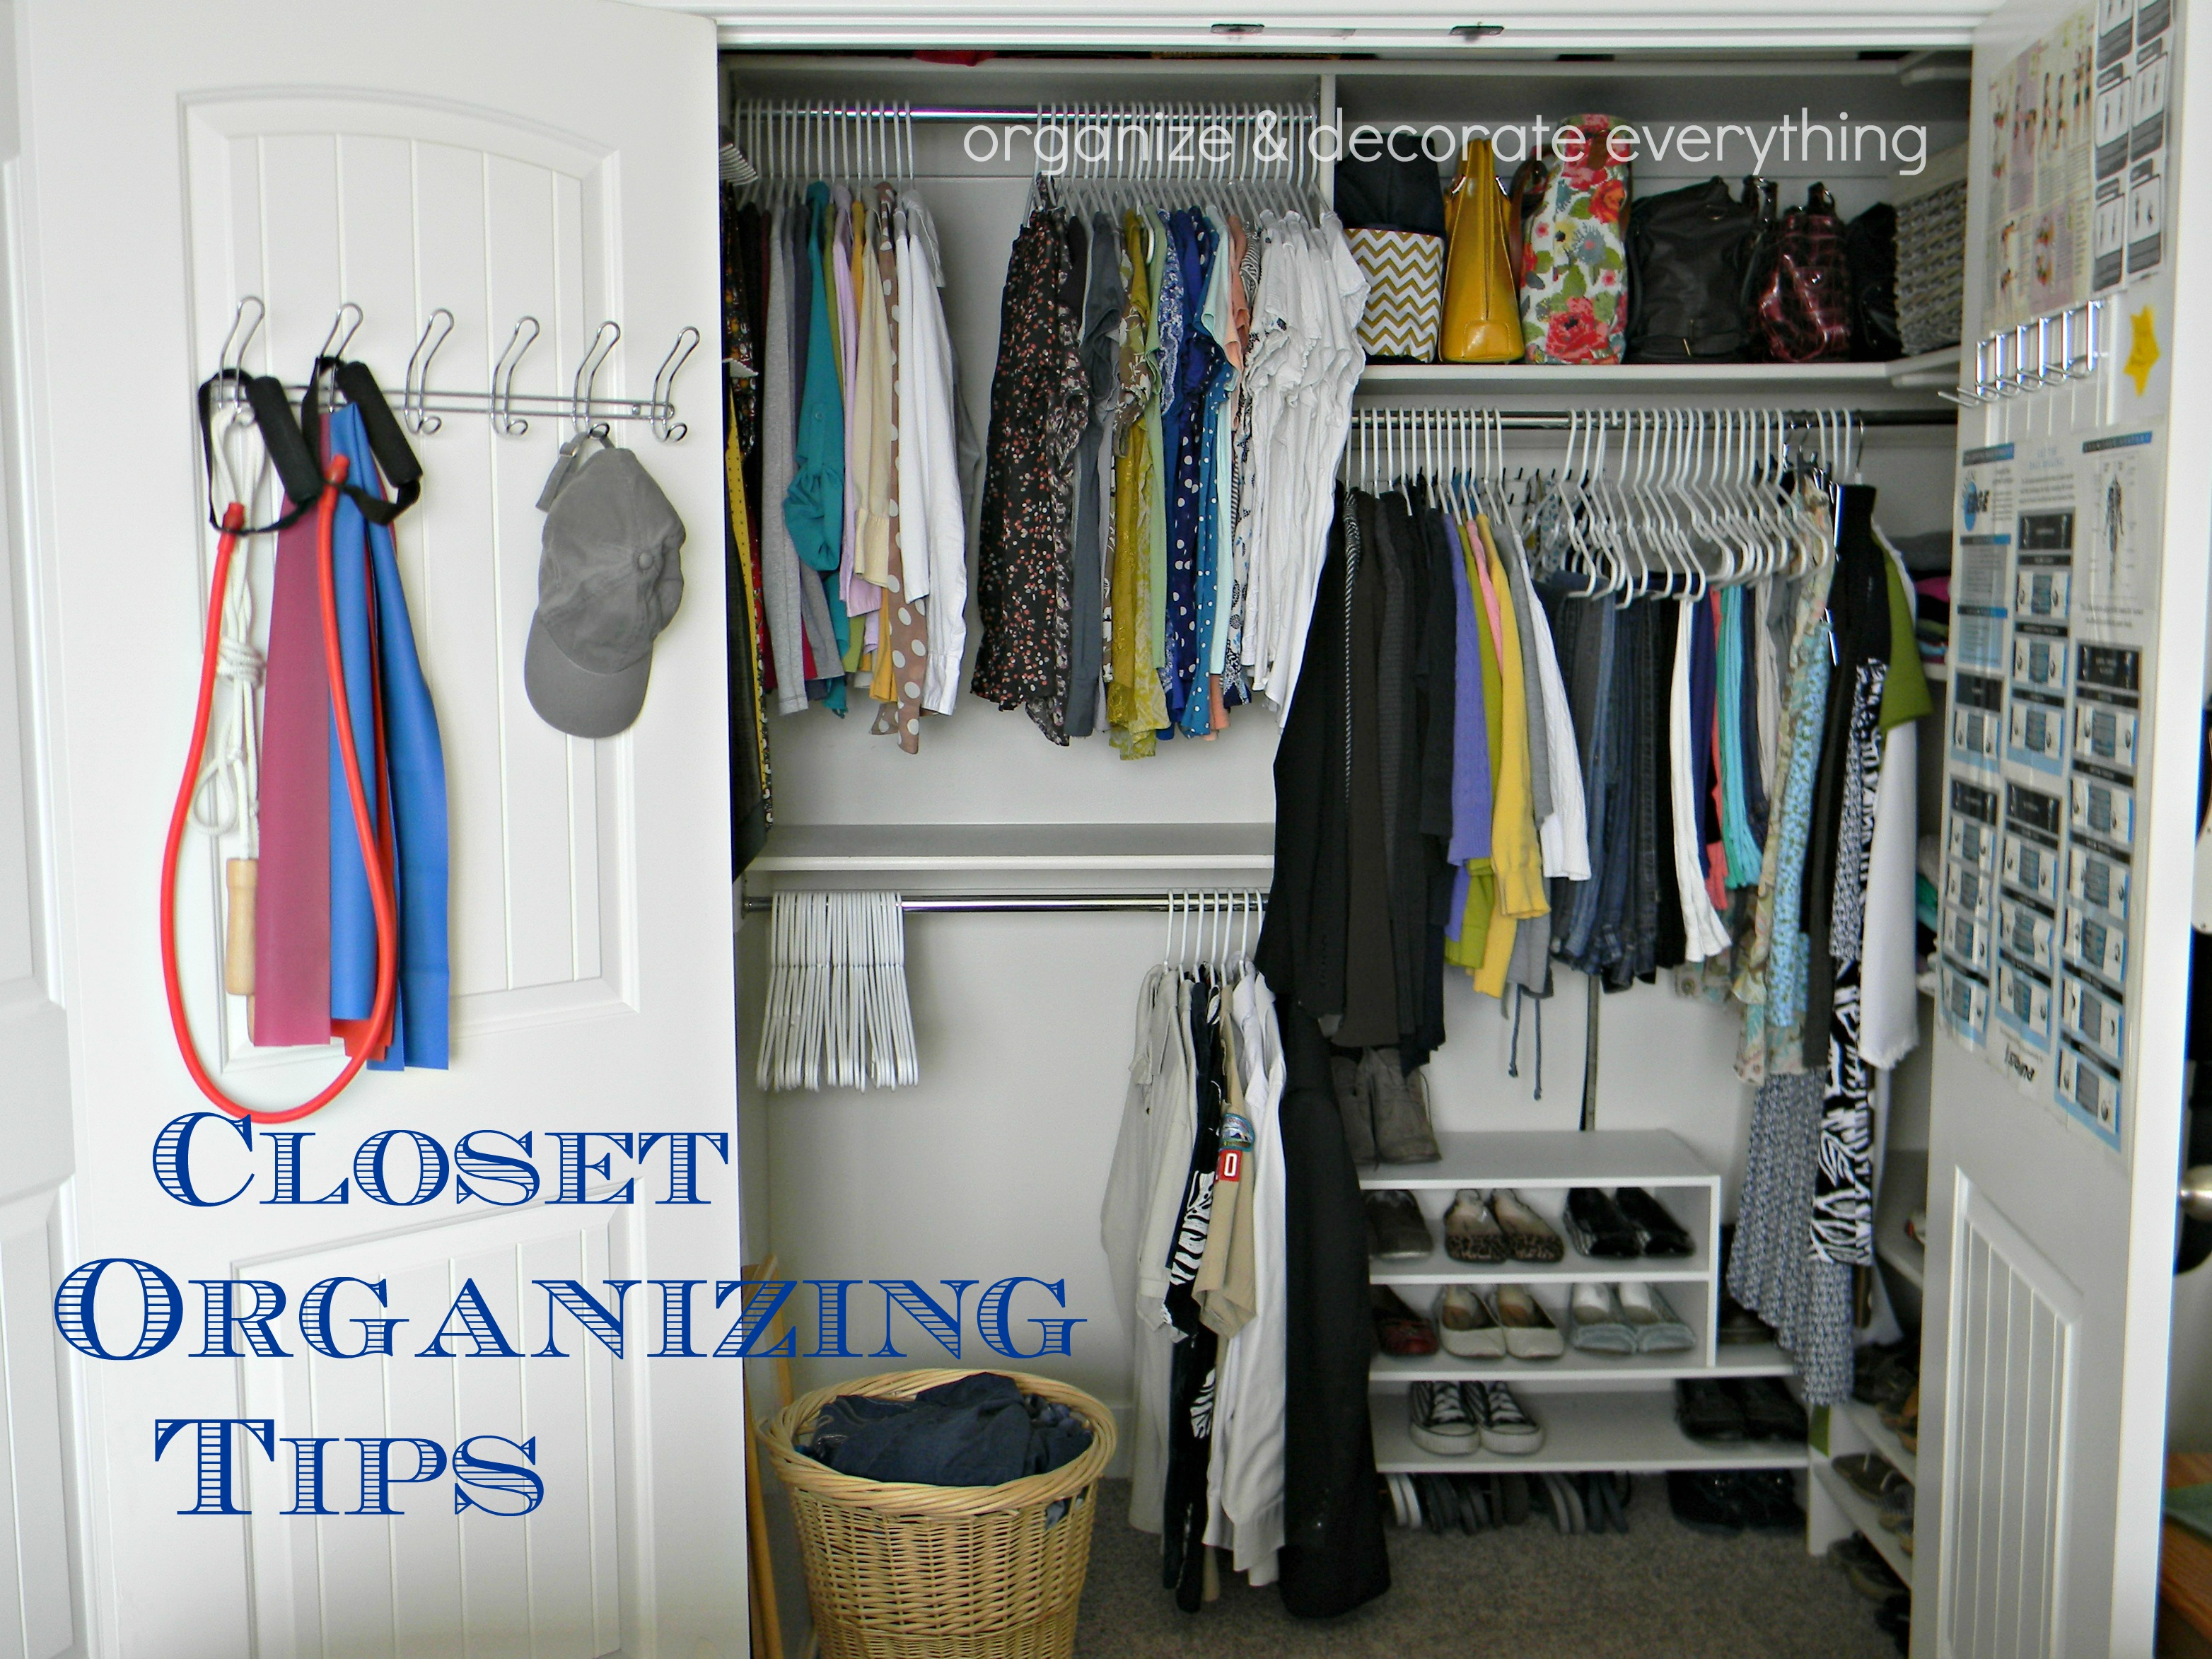 Closet Organizing Tips   Organize and Decorate Everything wOARv37t